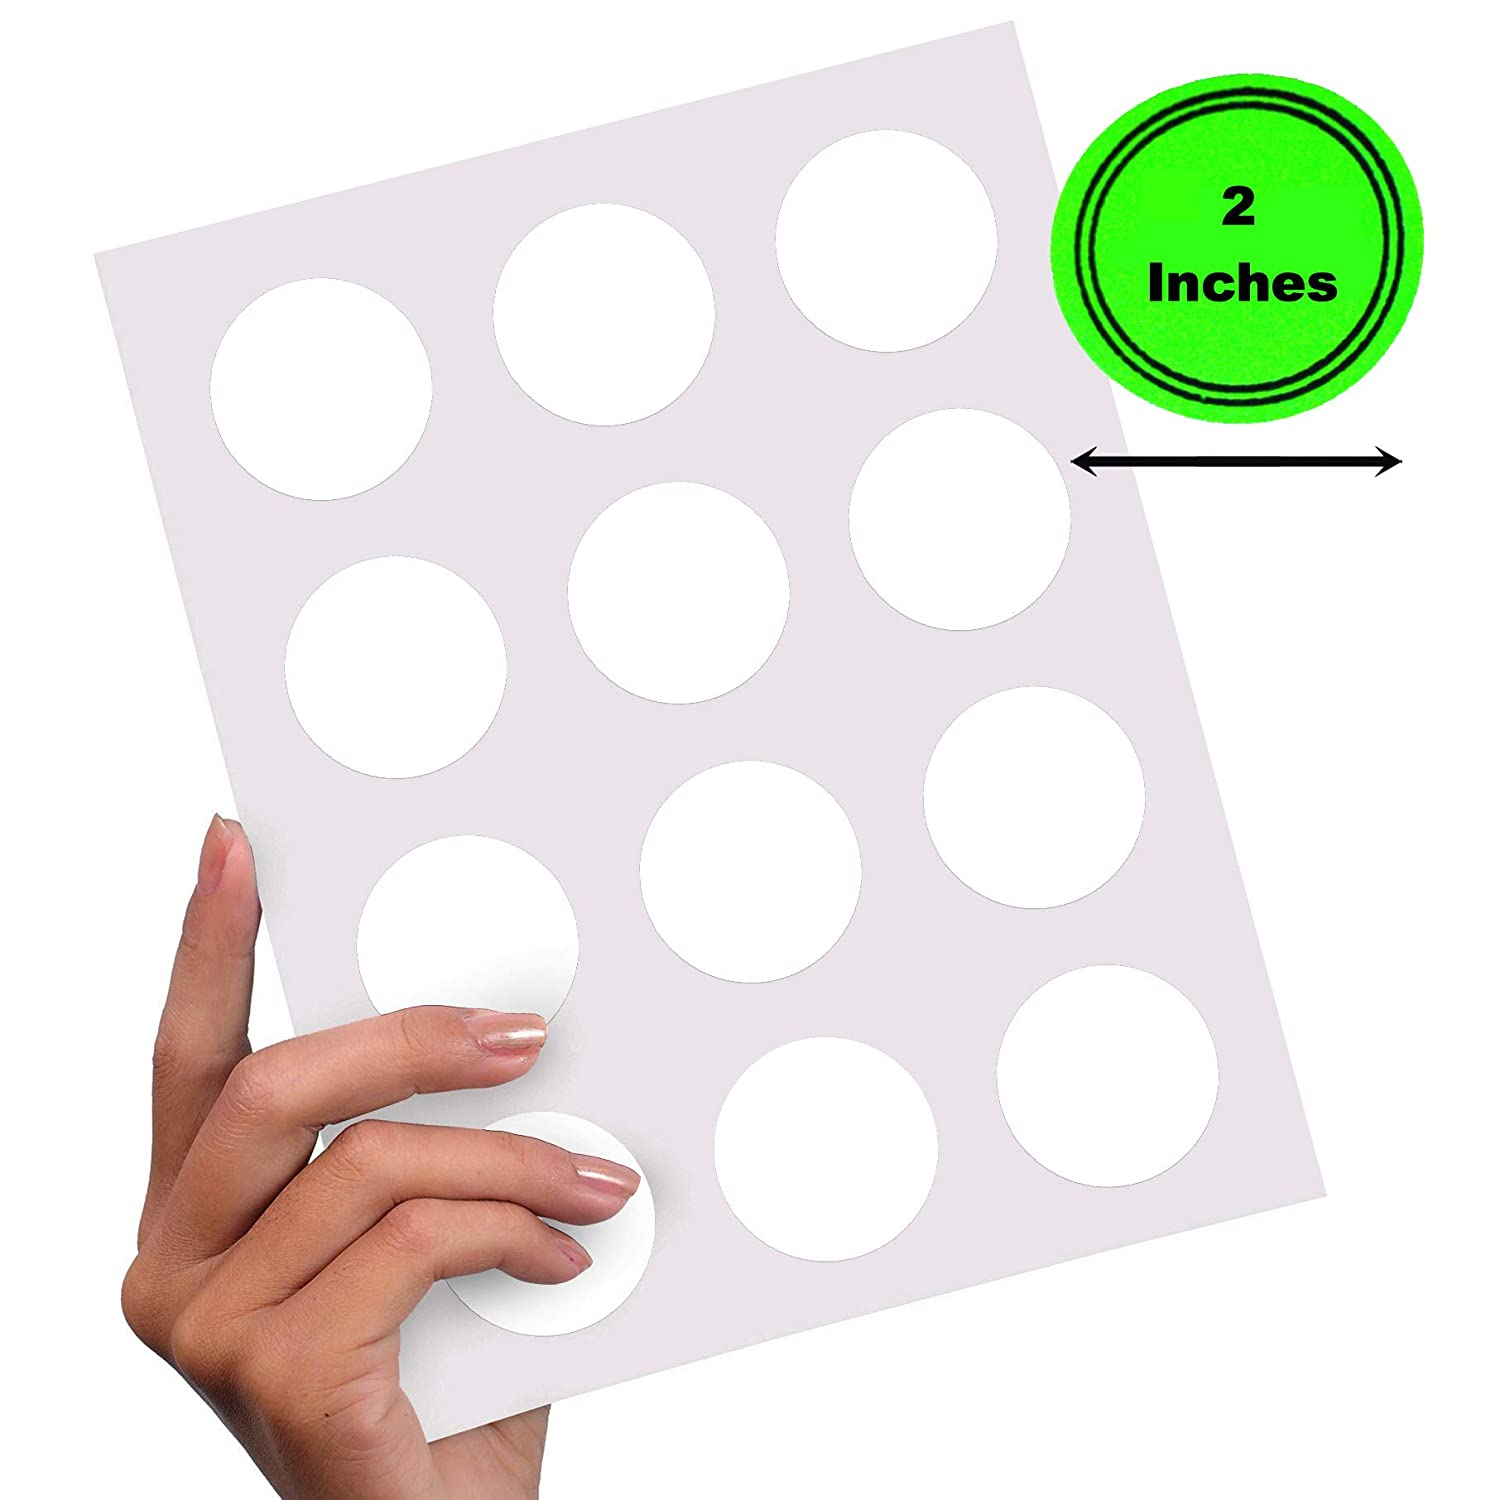 picture relating to Printable Sticker Labels identified as 180 Labels, 2 Inch Spherical Labels Printable Labels (15 Sheets of 12 Rounds)  White Printable Sticker Paper for Printer Circle Template Sticker Labels